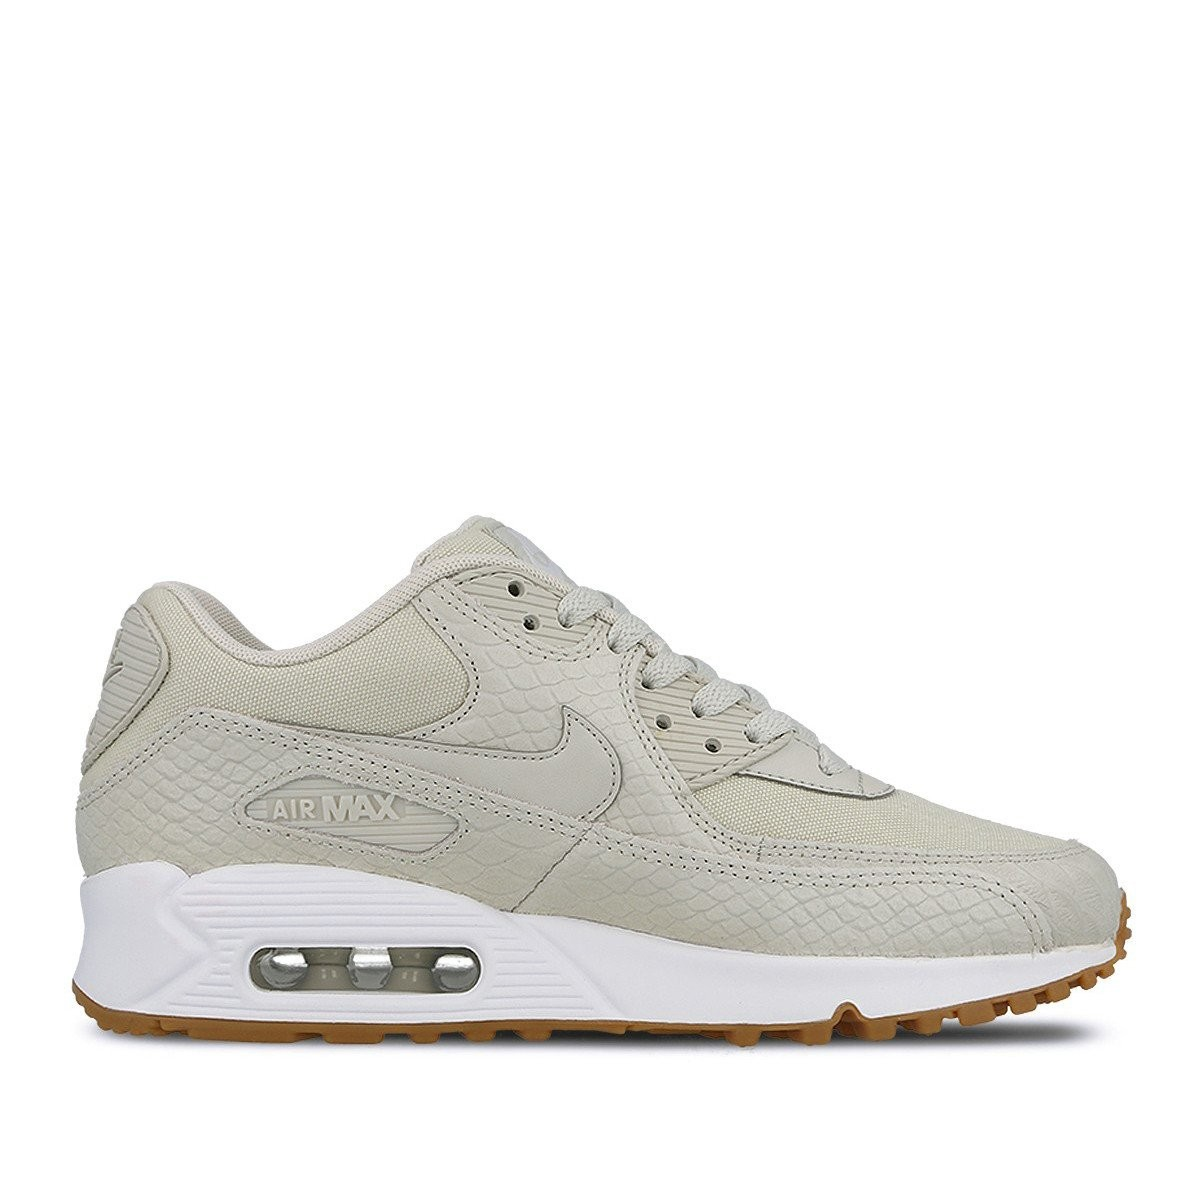 896497-001 Nike Femme Air Max 90 PRM Chaussures - Light Bone/Blanche